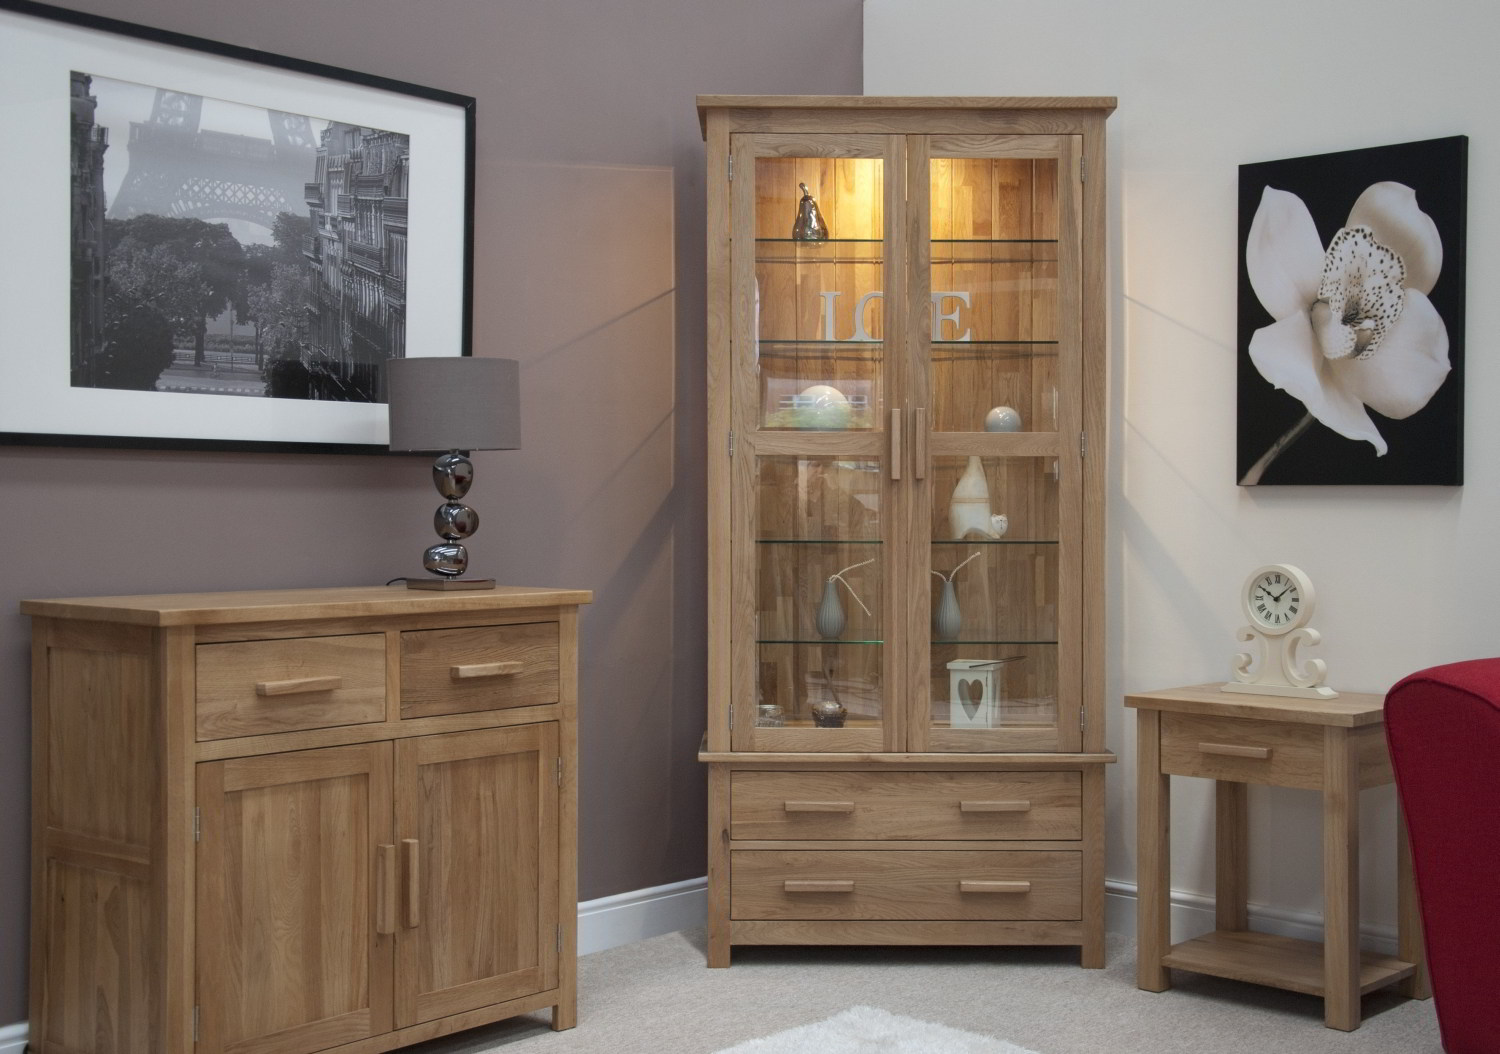 Eton solid oak living room furniture glazed display cabinet ...